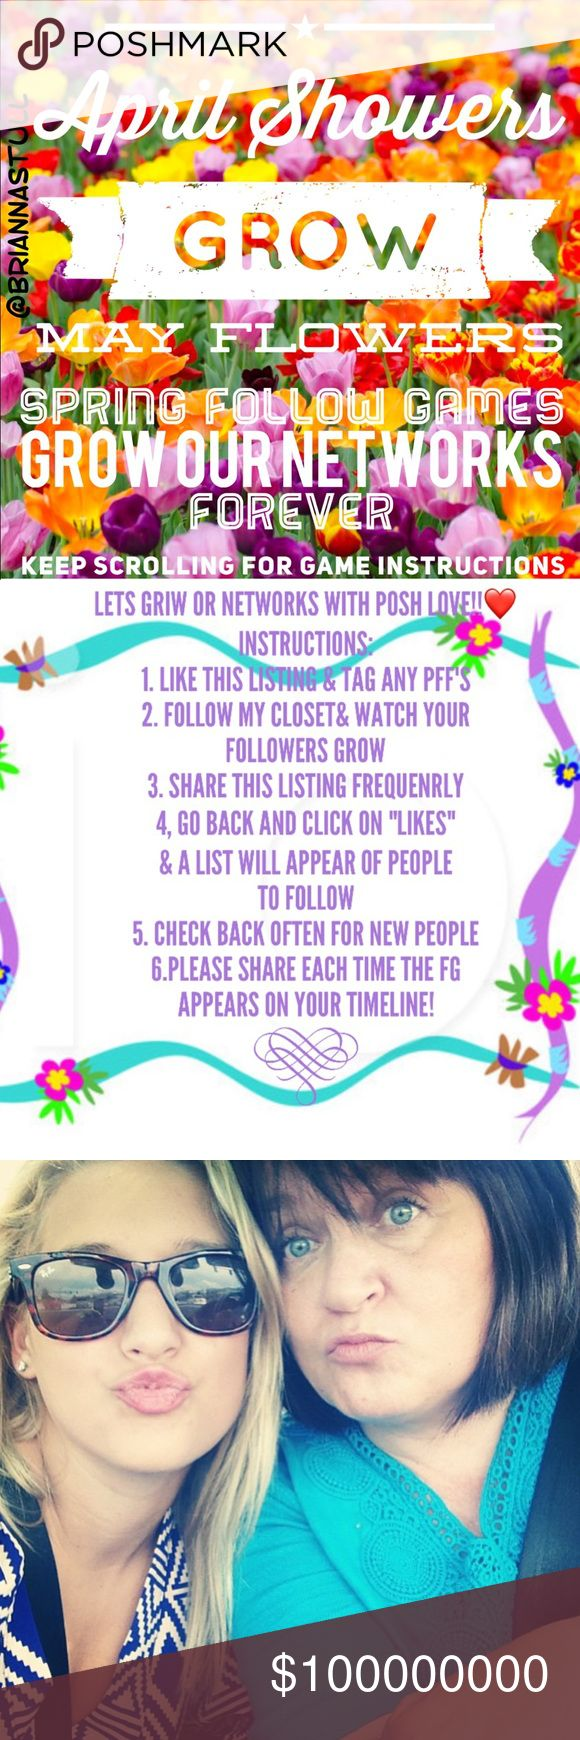 Follow games help us all grow our networks! nwt